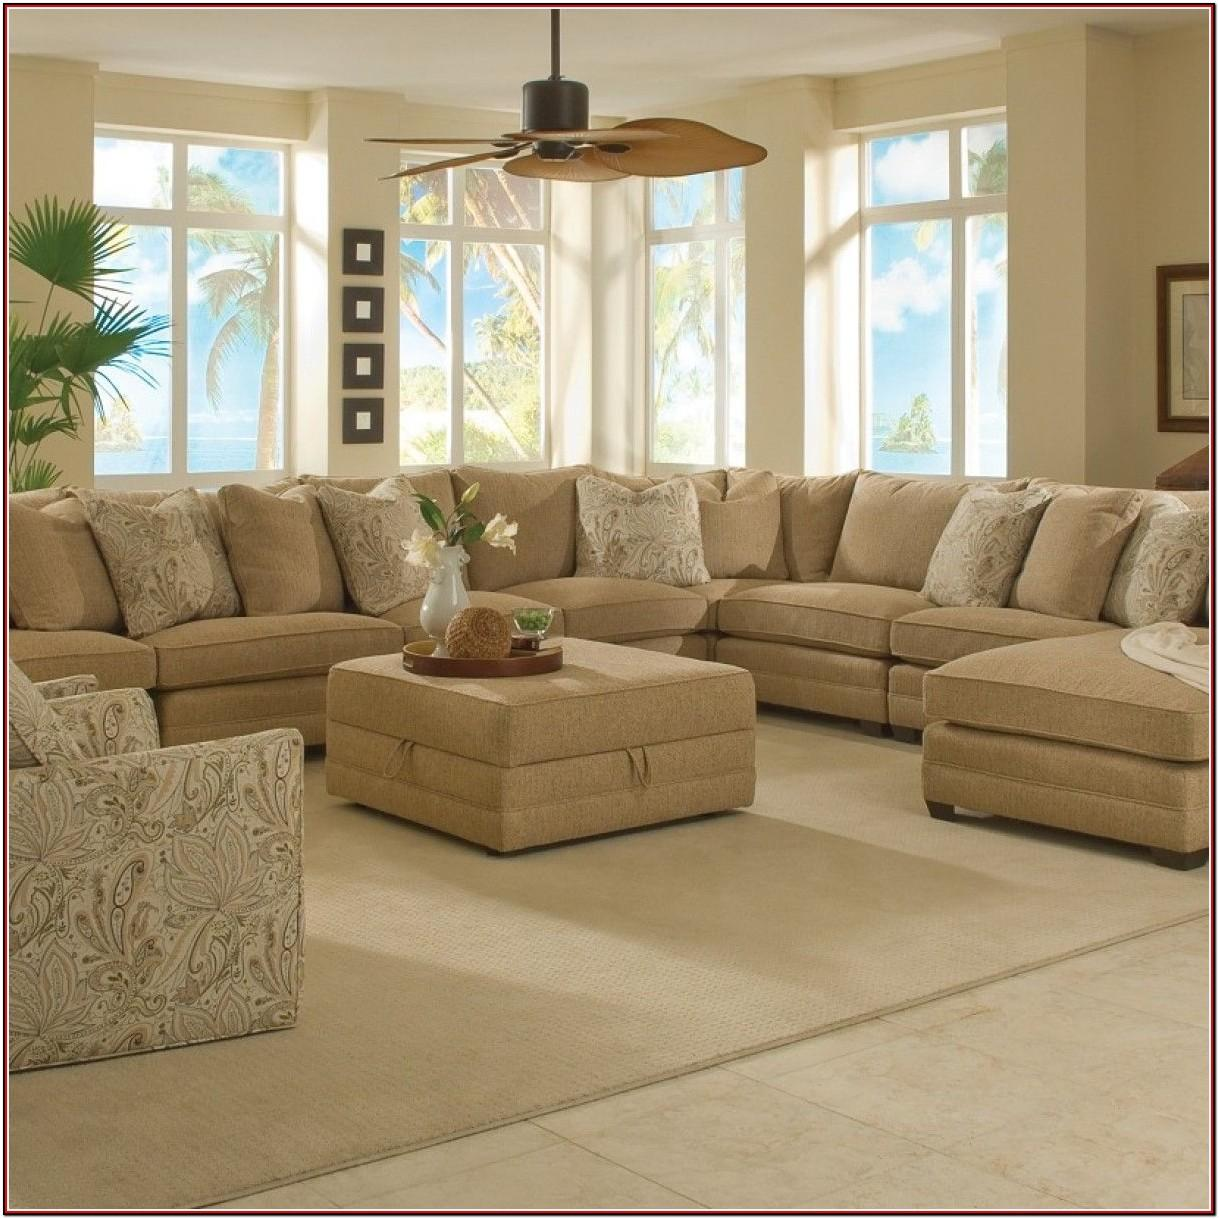 Large Couch In Small Living Room